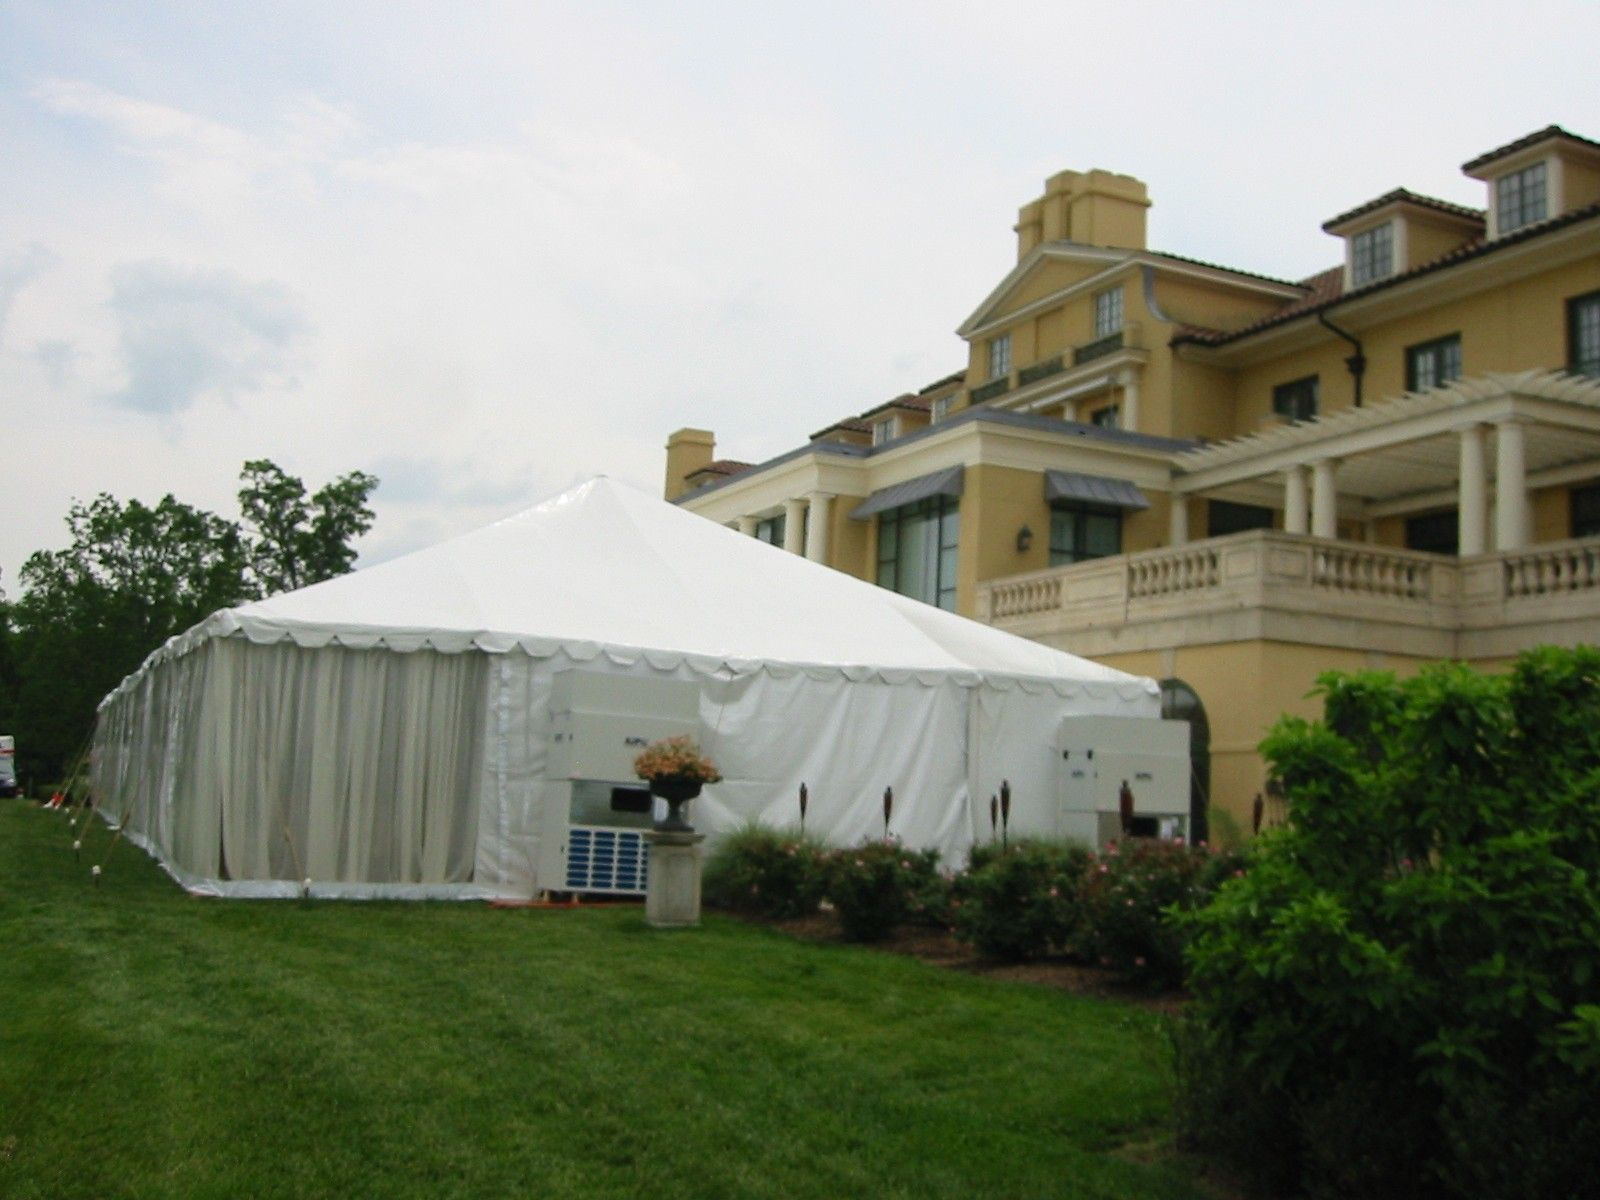 The Right Tent Air Conditioner Makes Or Breaks Your Event